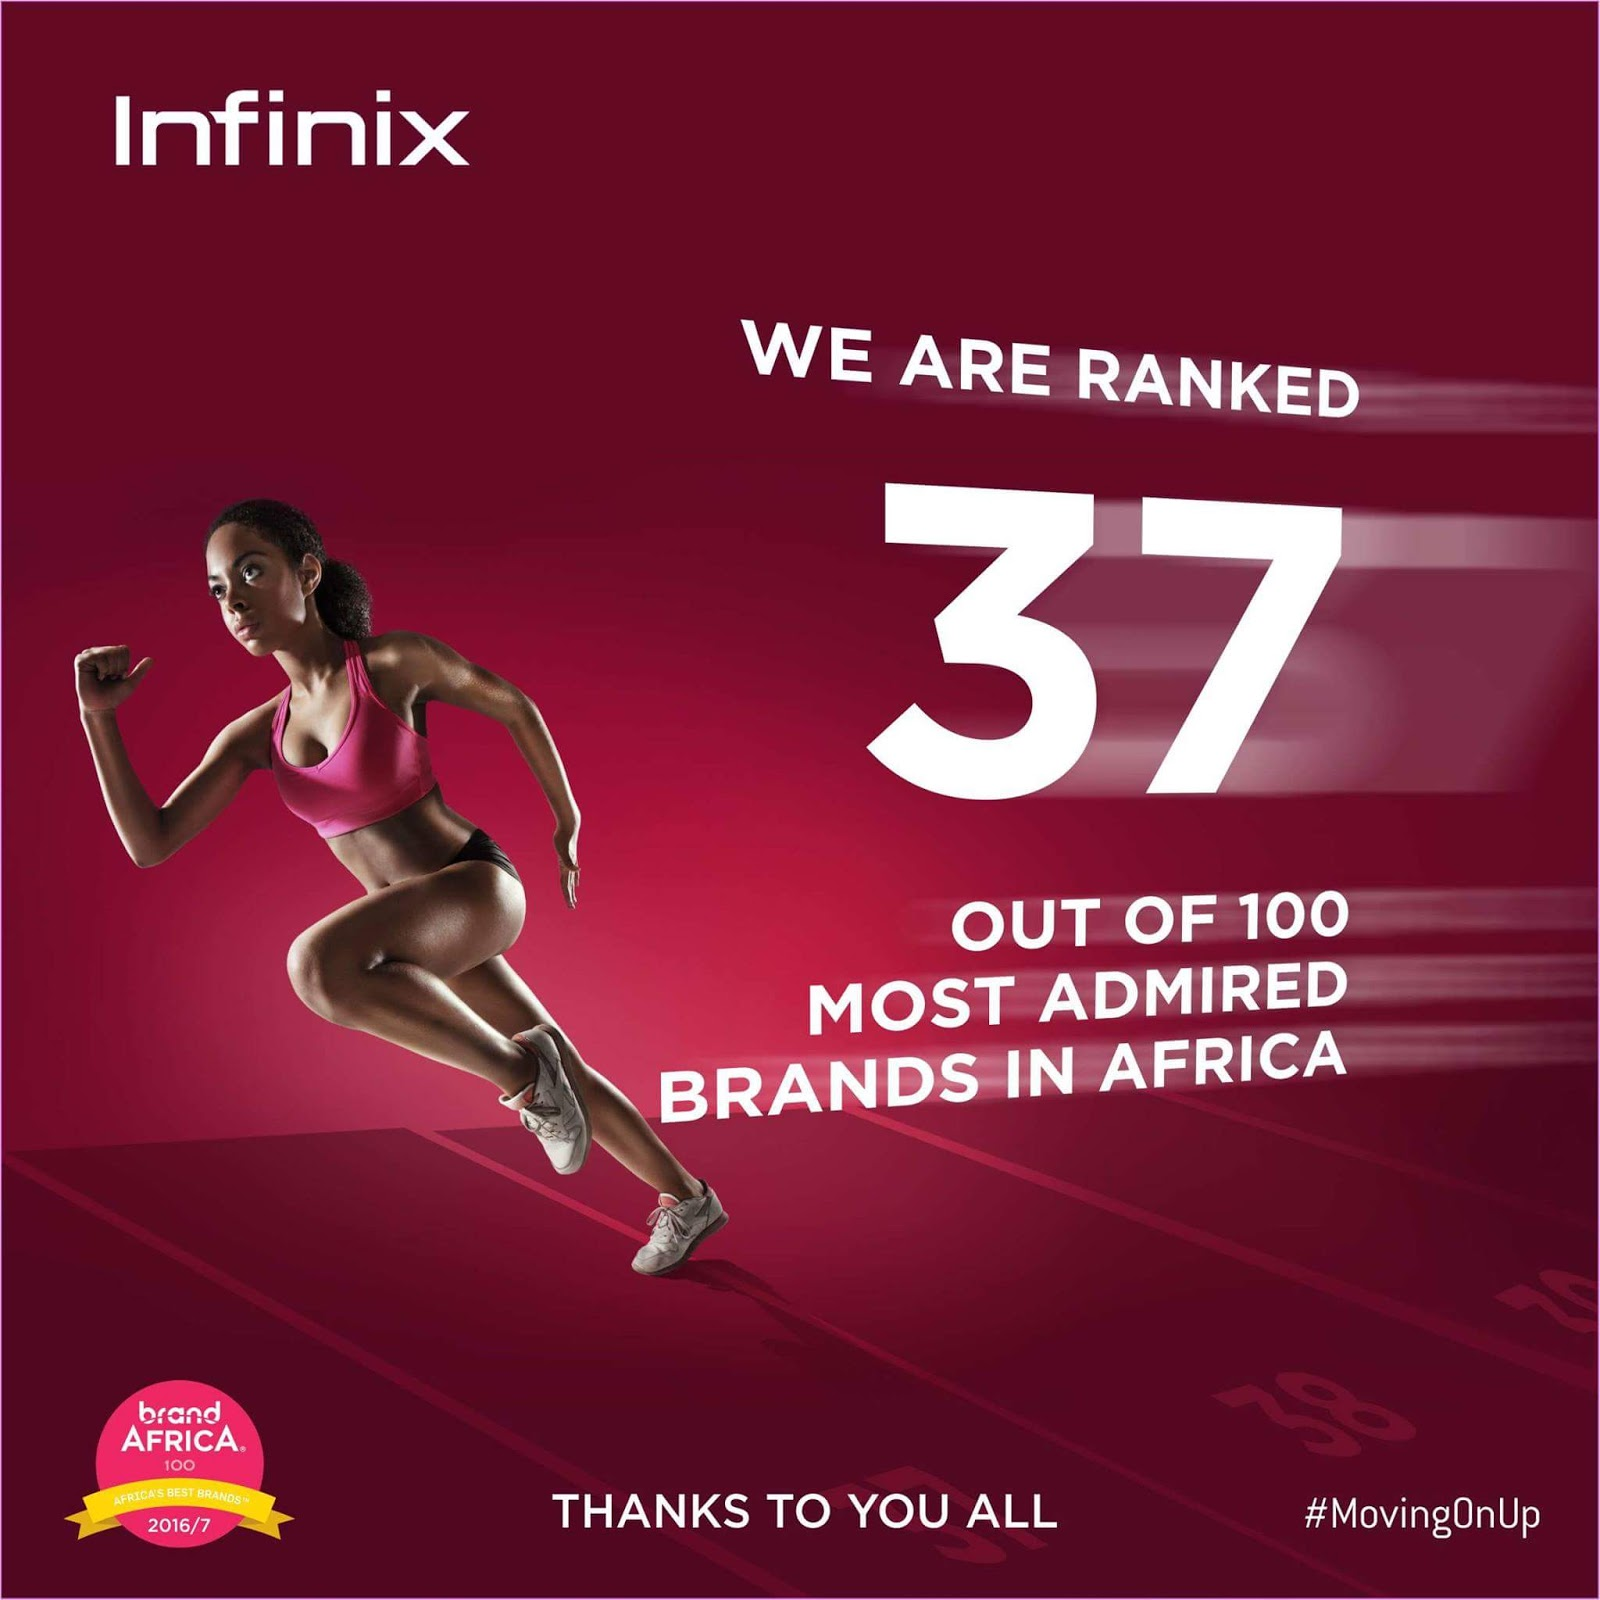 Photo of Infinix ranked 37th out of 100 most admired brands in Africa